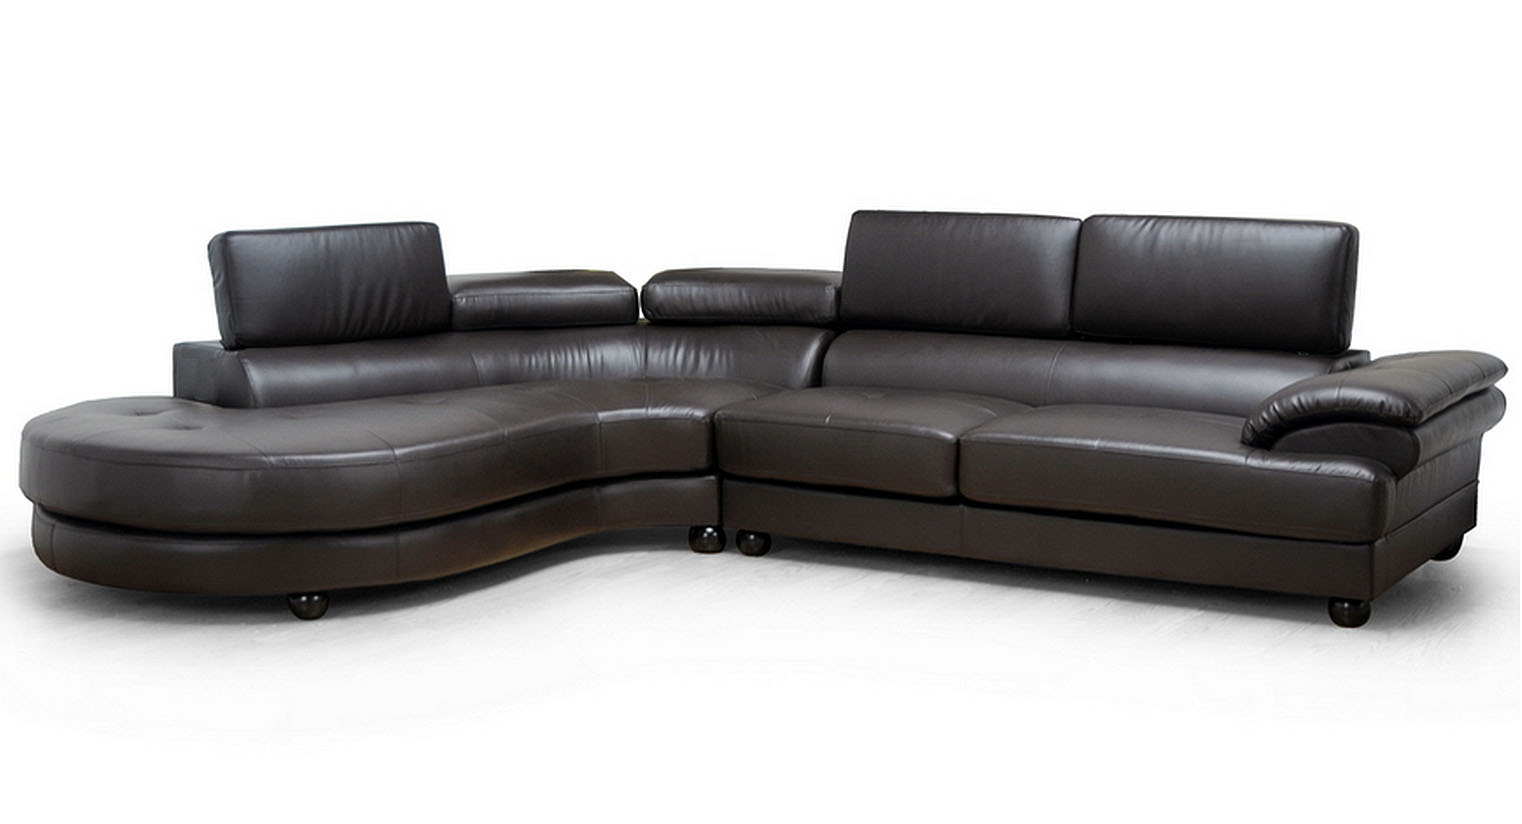 Adelaide Dark Brown Leather Sectional Sofa With Chaise By